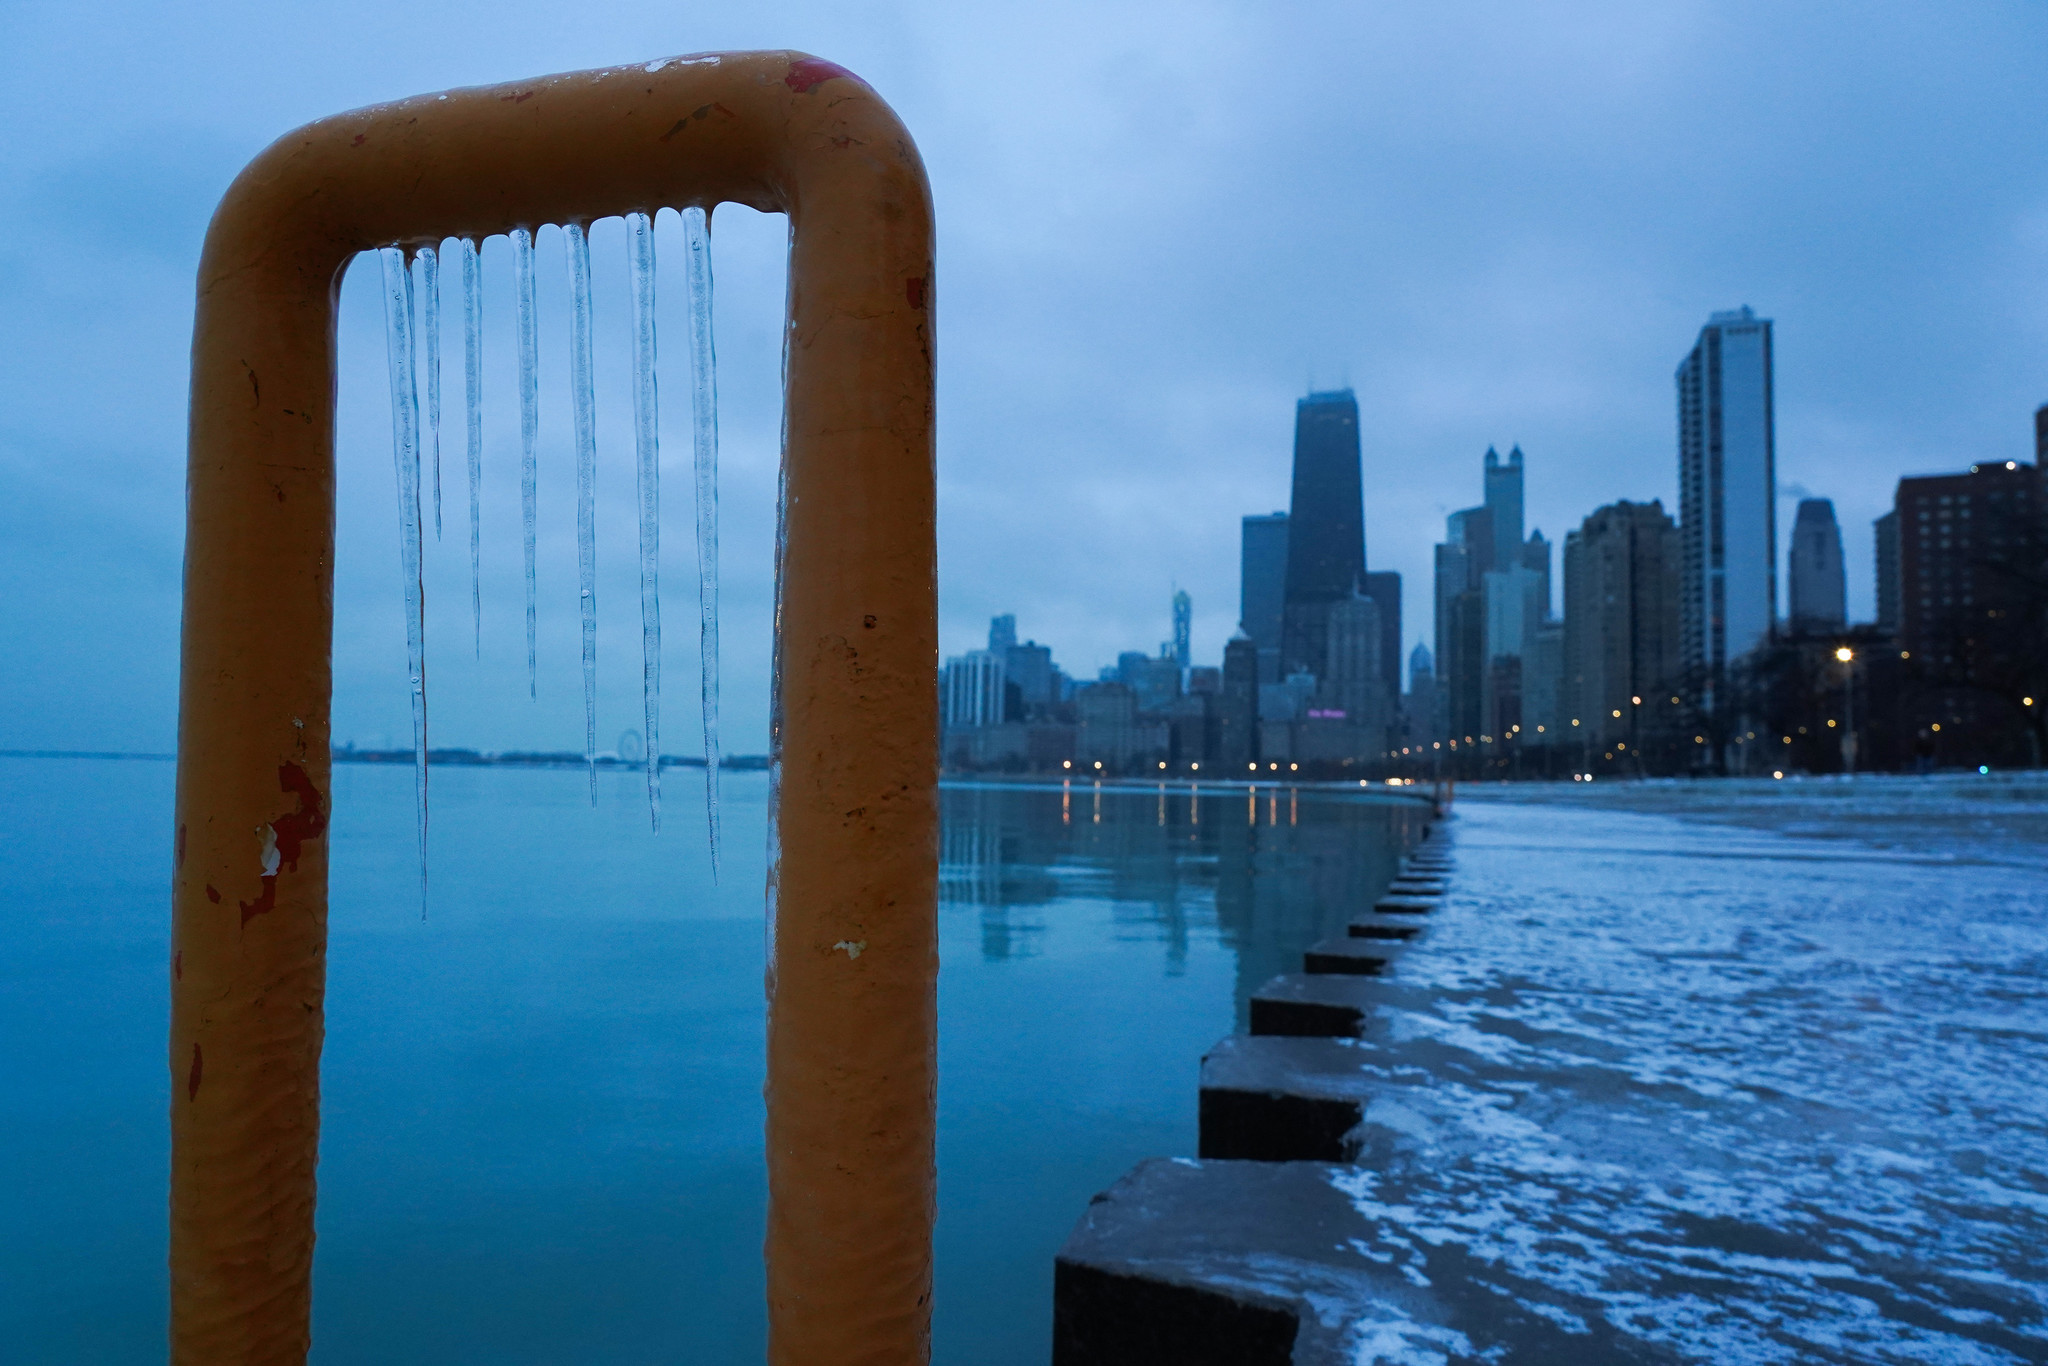 'Winter is making its return' to Chicago area this week, forecaster says